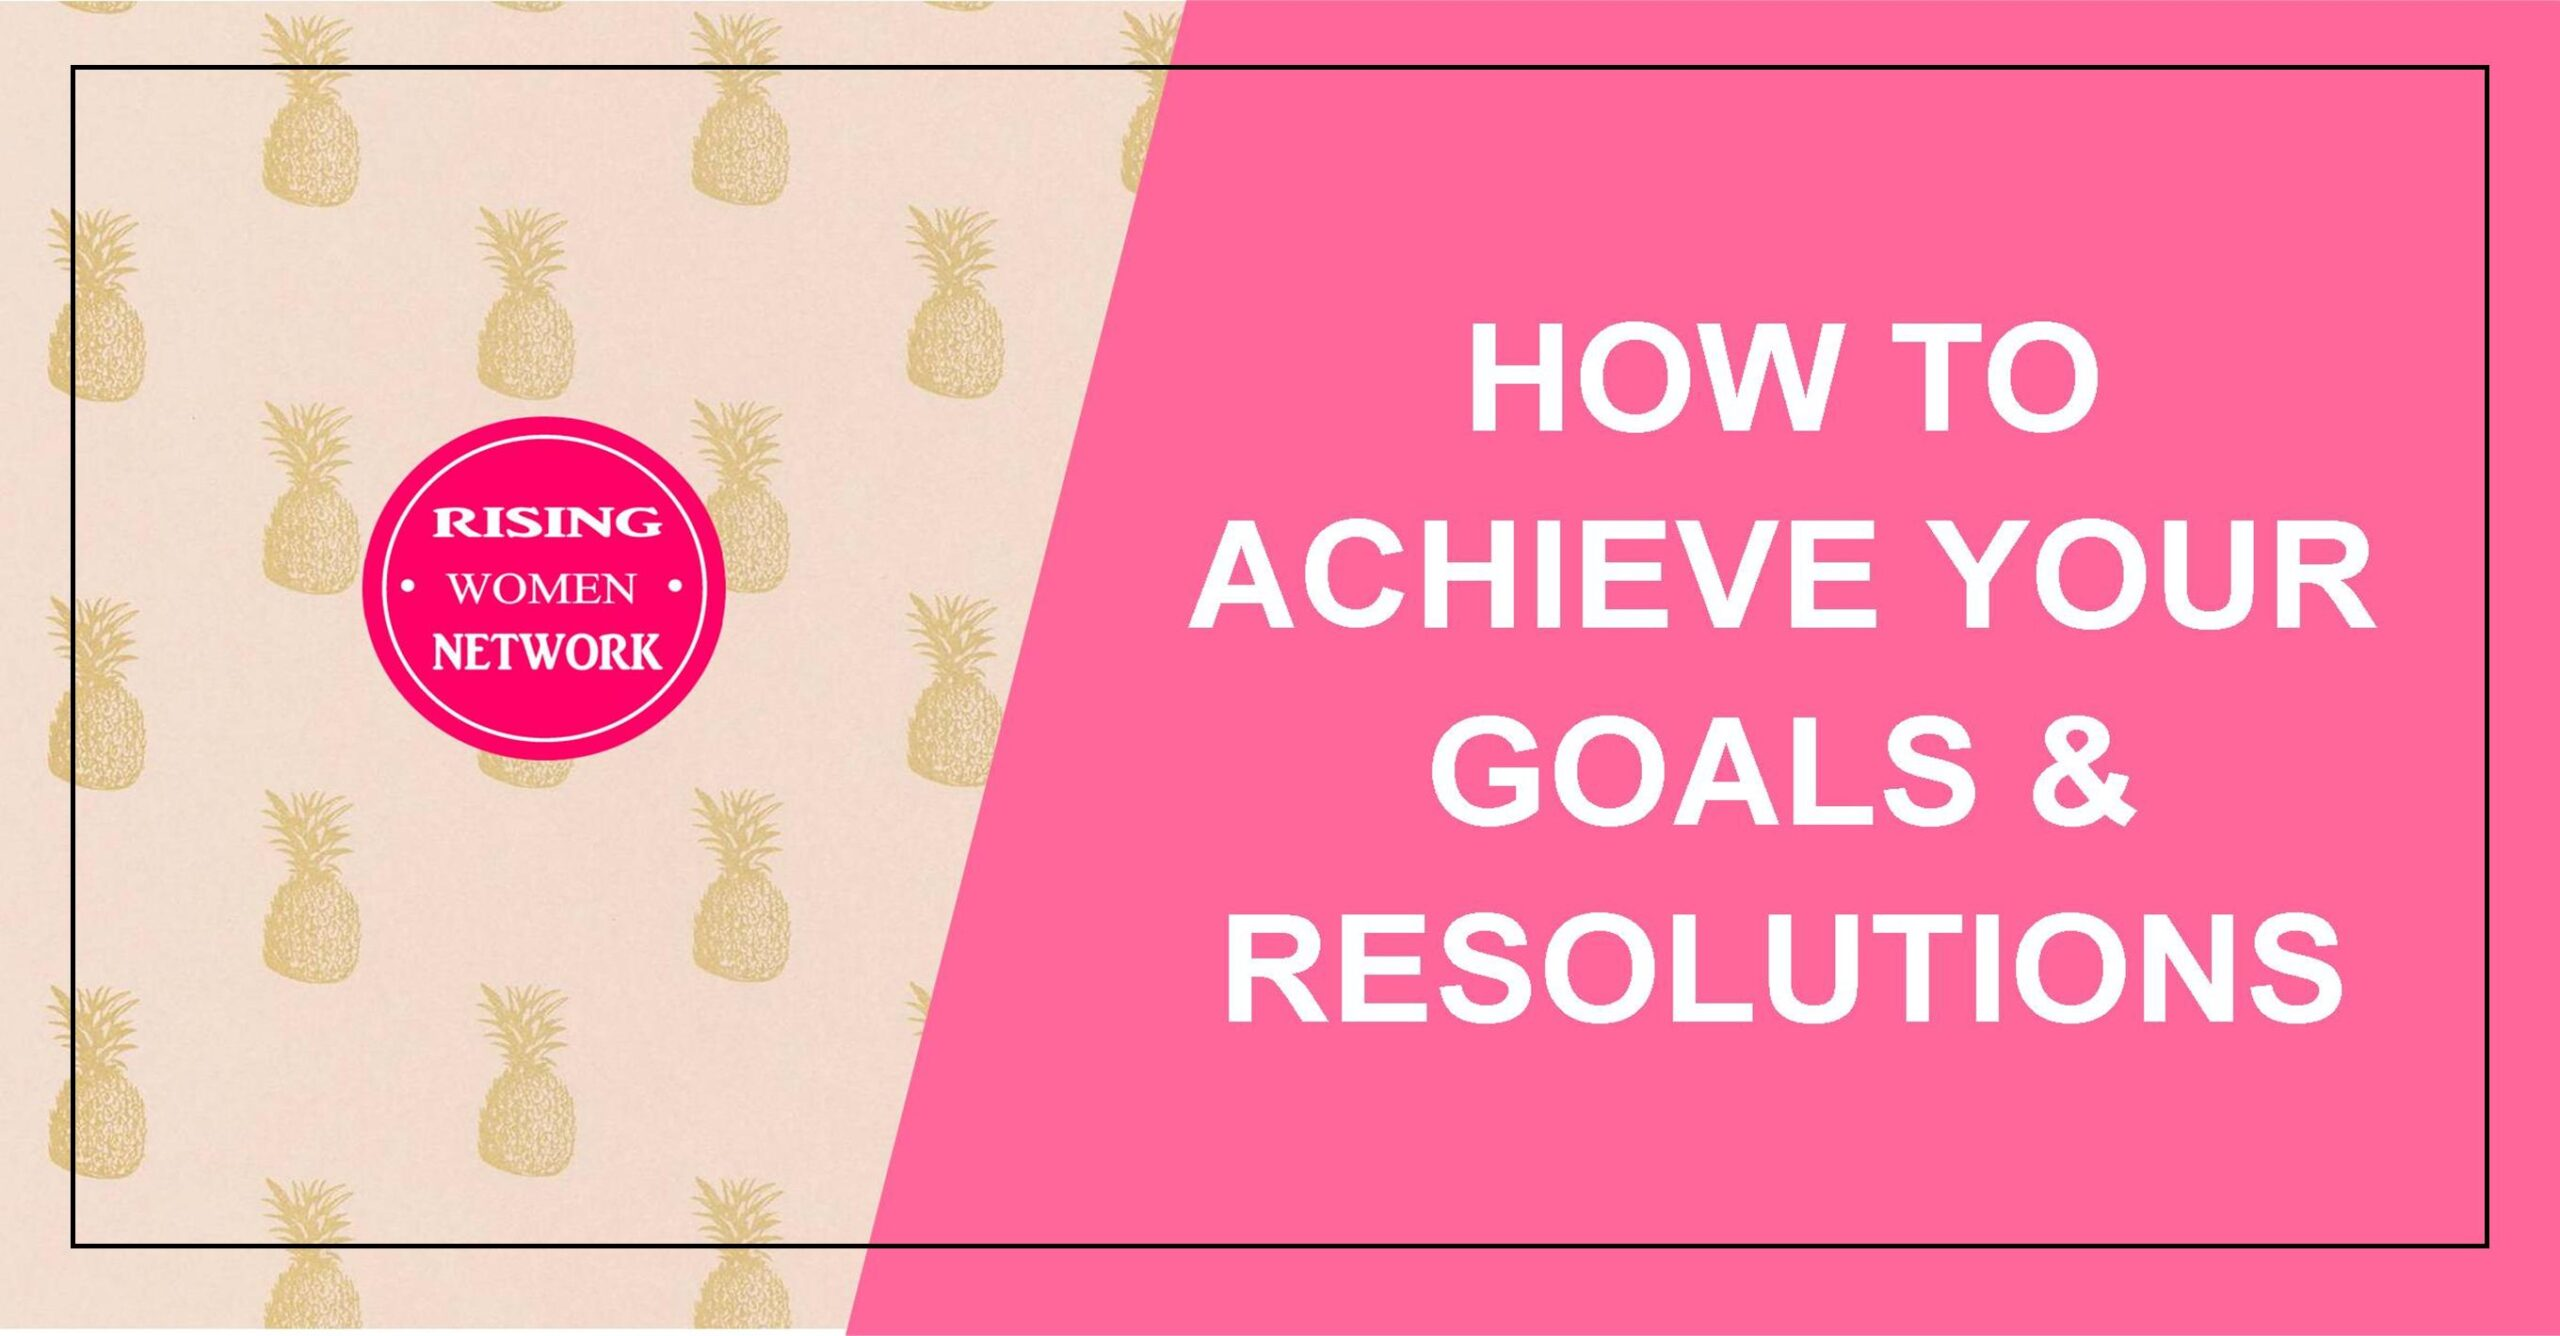 How to Achieve Your Goals and Resolutions